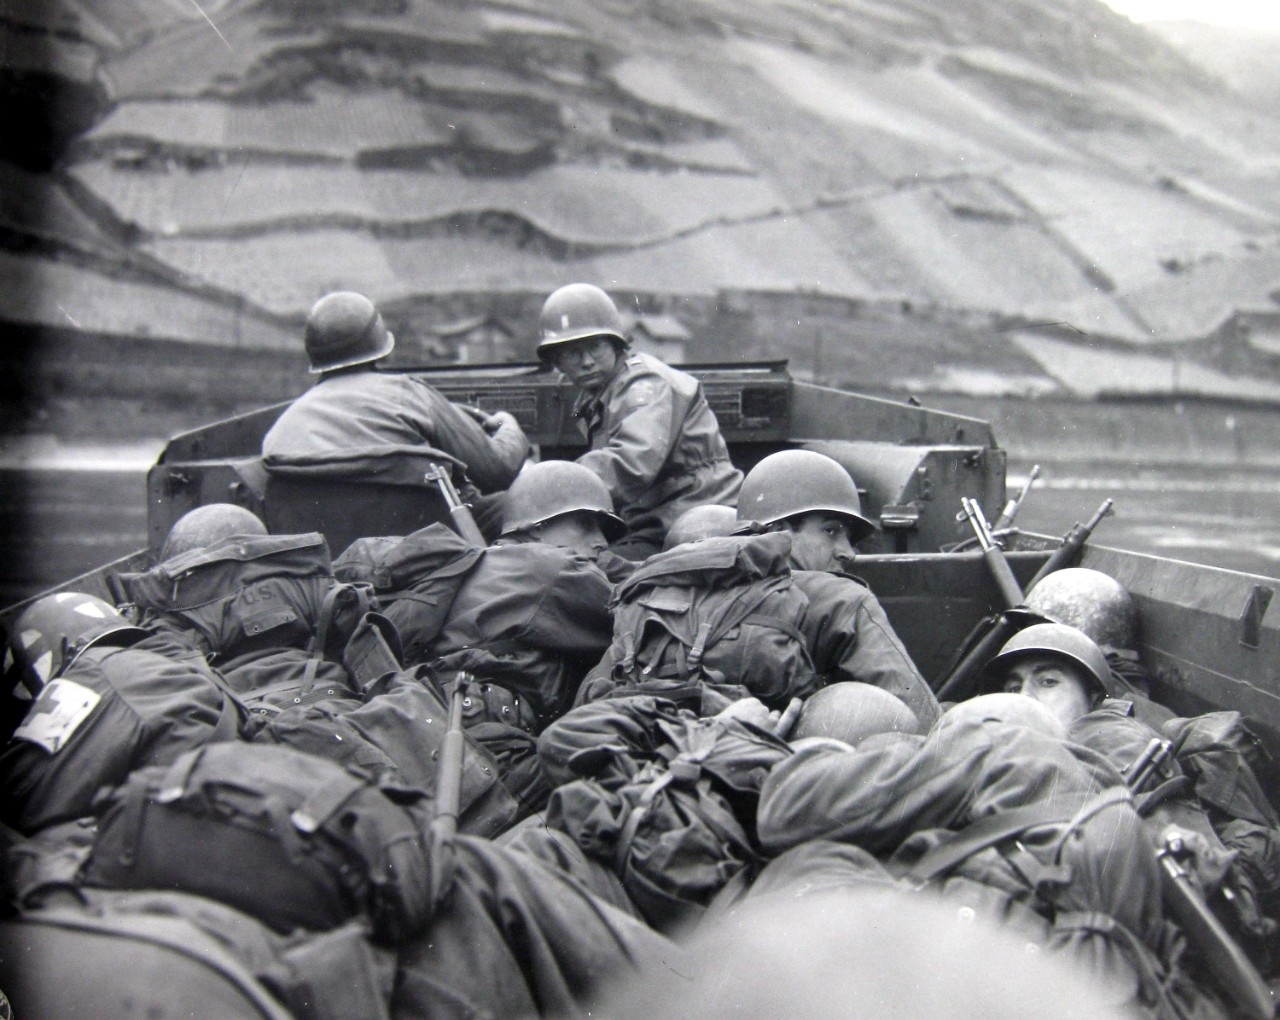 <p>Crouching low for concealment and protection in a DUKW amphibious vehicle, men of the 89th Division, U.S. Third Army, cross the Rhine River at Oberwesel, Germany.</p>